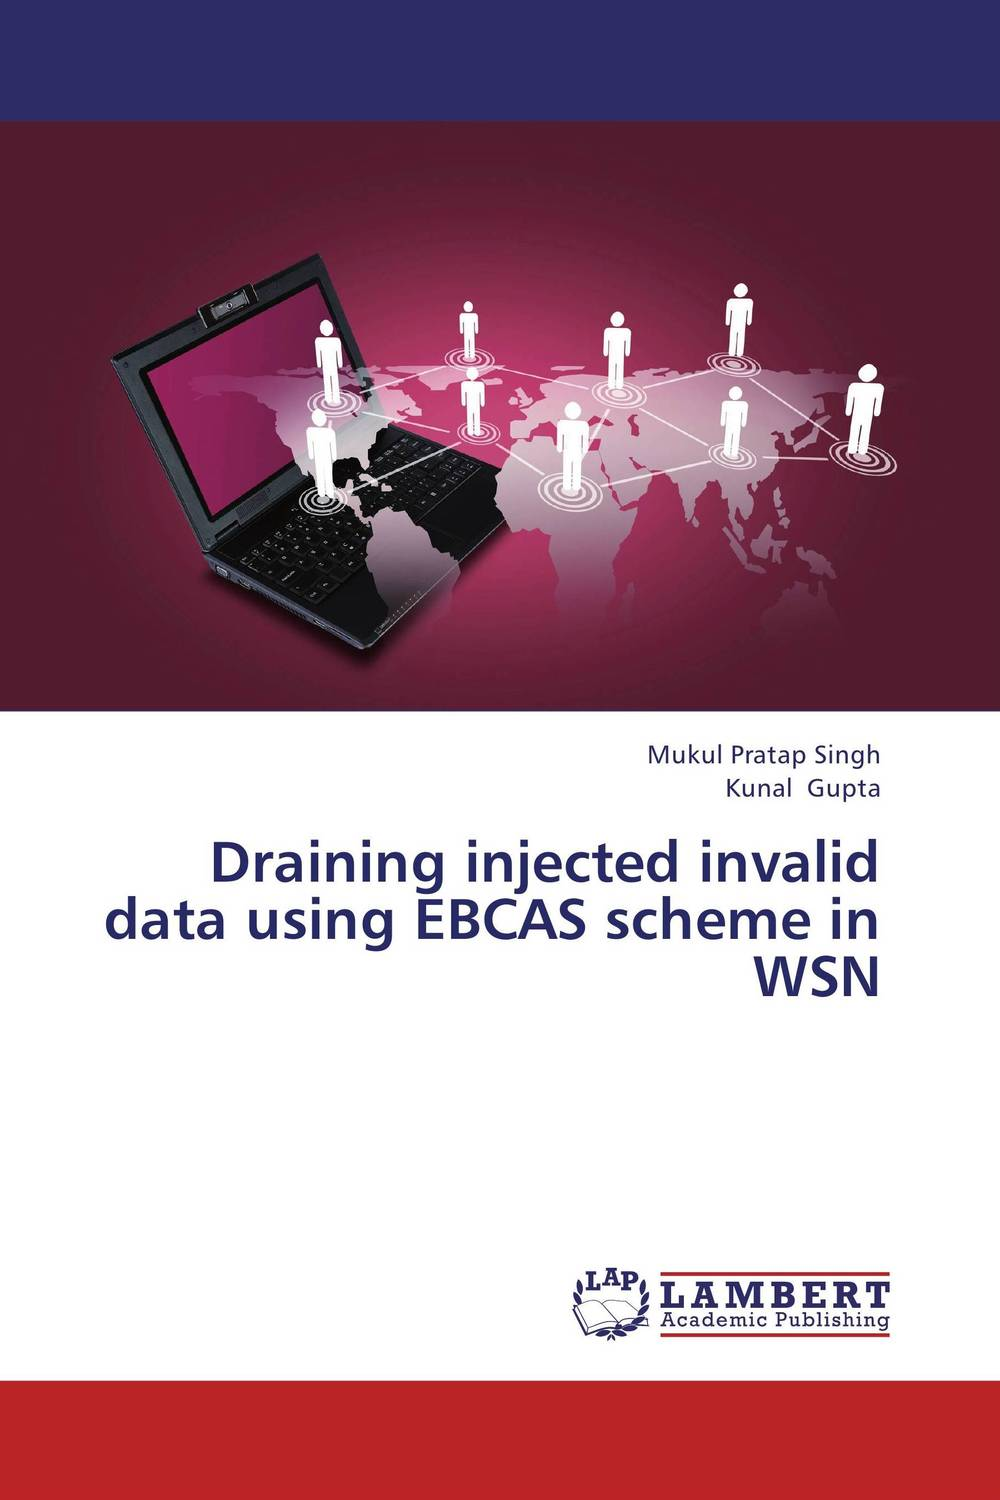 Draining injected invalid data using EBCAS scheme in WSN